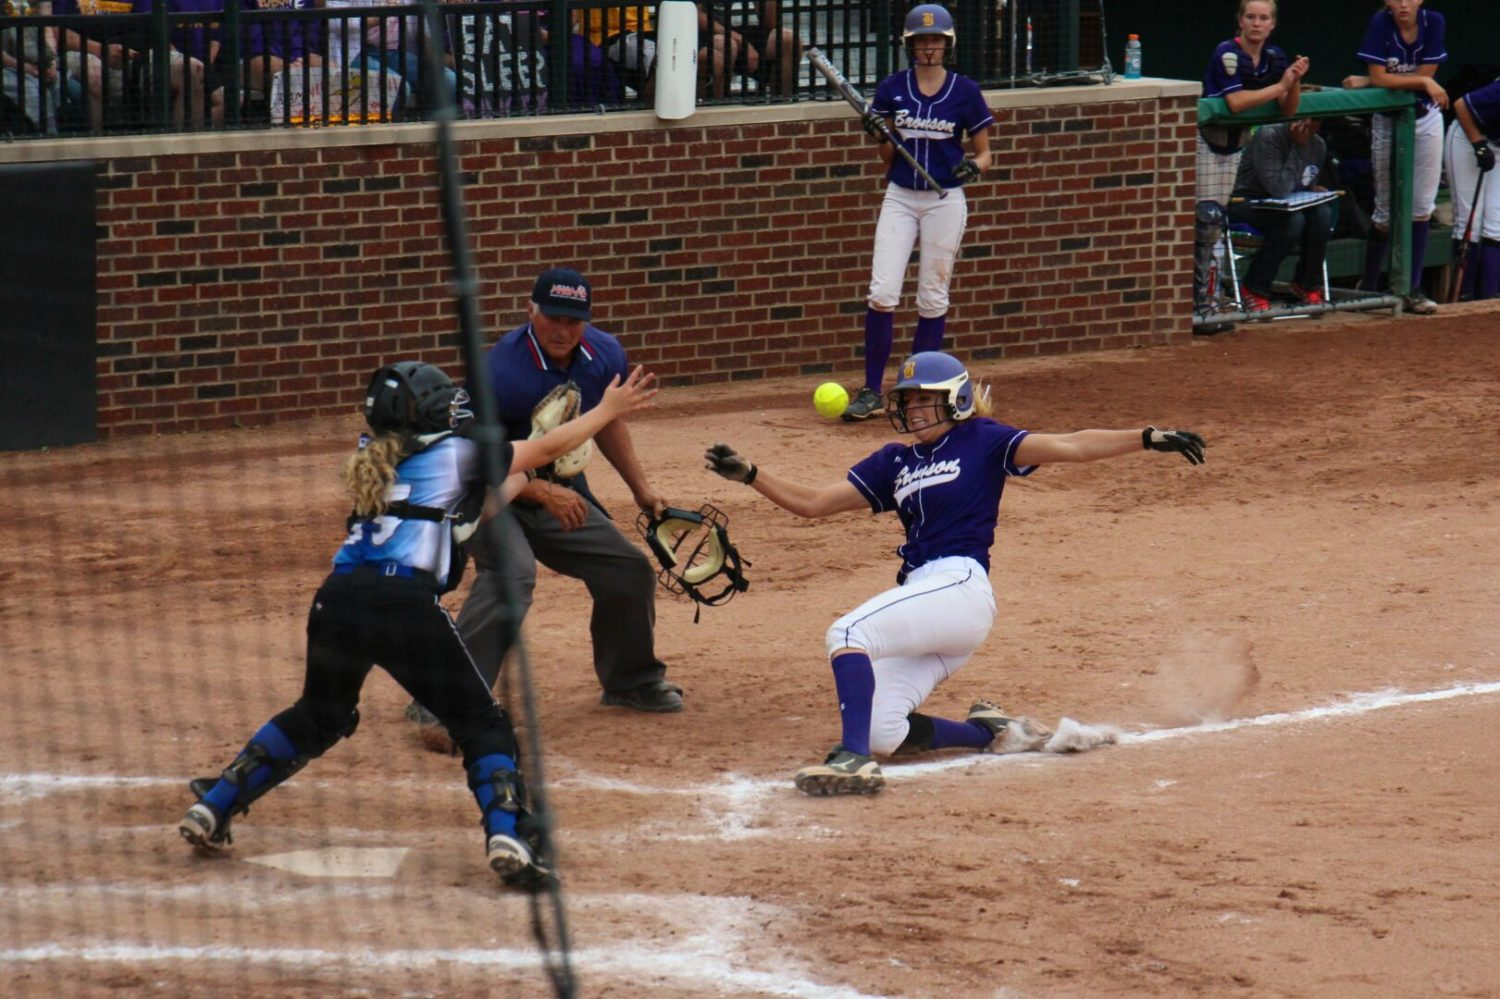 Montague softball team's Cinderella run ends with a 5-0 loss to Bronson in Division 3 semifinals